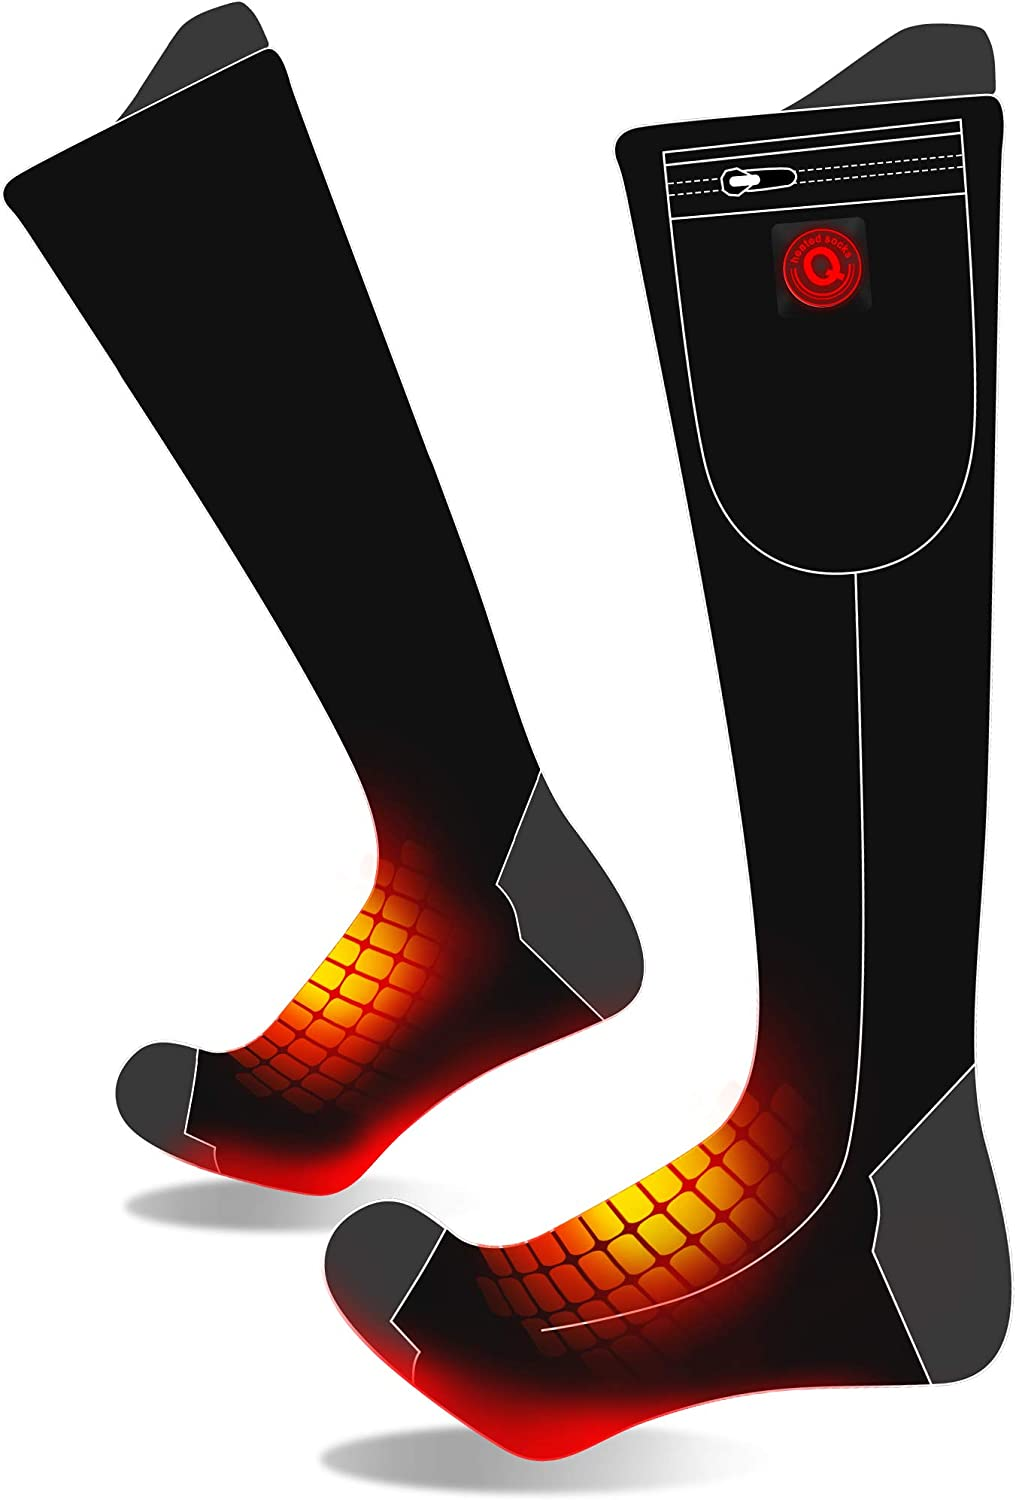 7.4V Heated 激安セール Socks for Men Women-Rechargeable ランキングTOP10 He Battery Electric